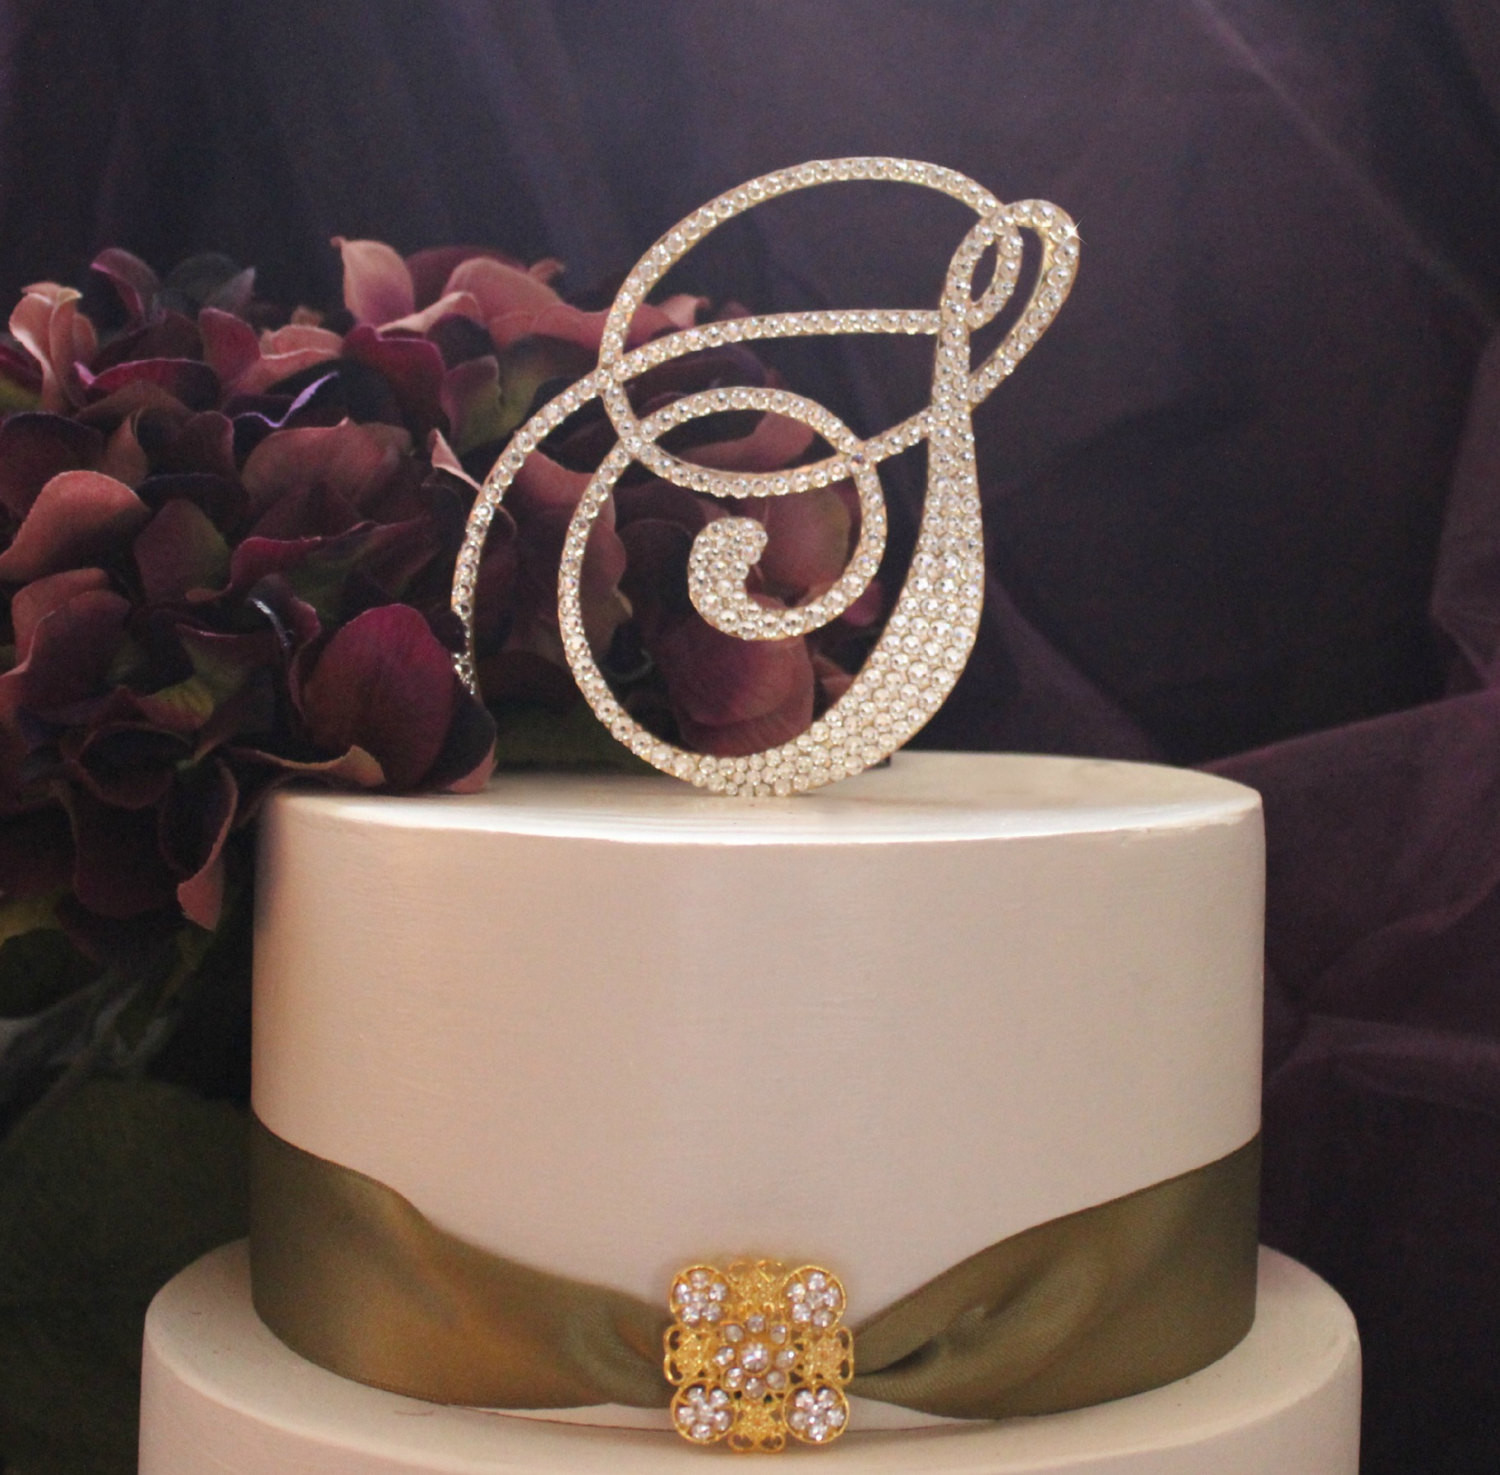 Gold Initial Cake Toppers For Wedding Cakes  Monogram GOLD Wedding Cake Topper Initial in by InitialMoments